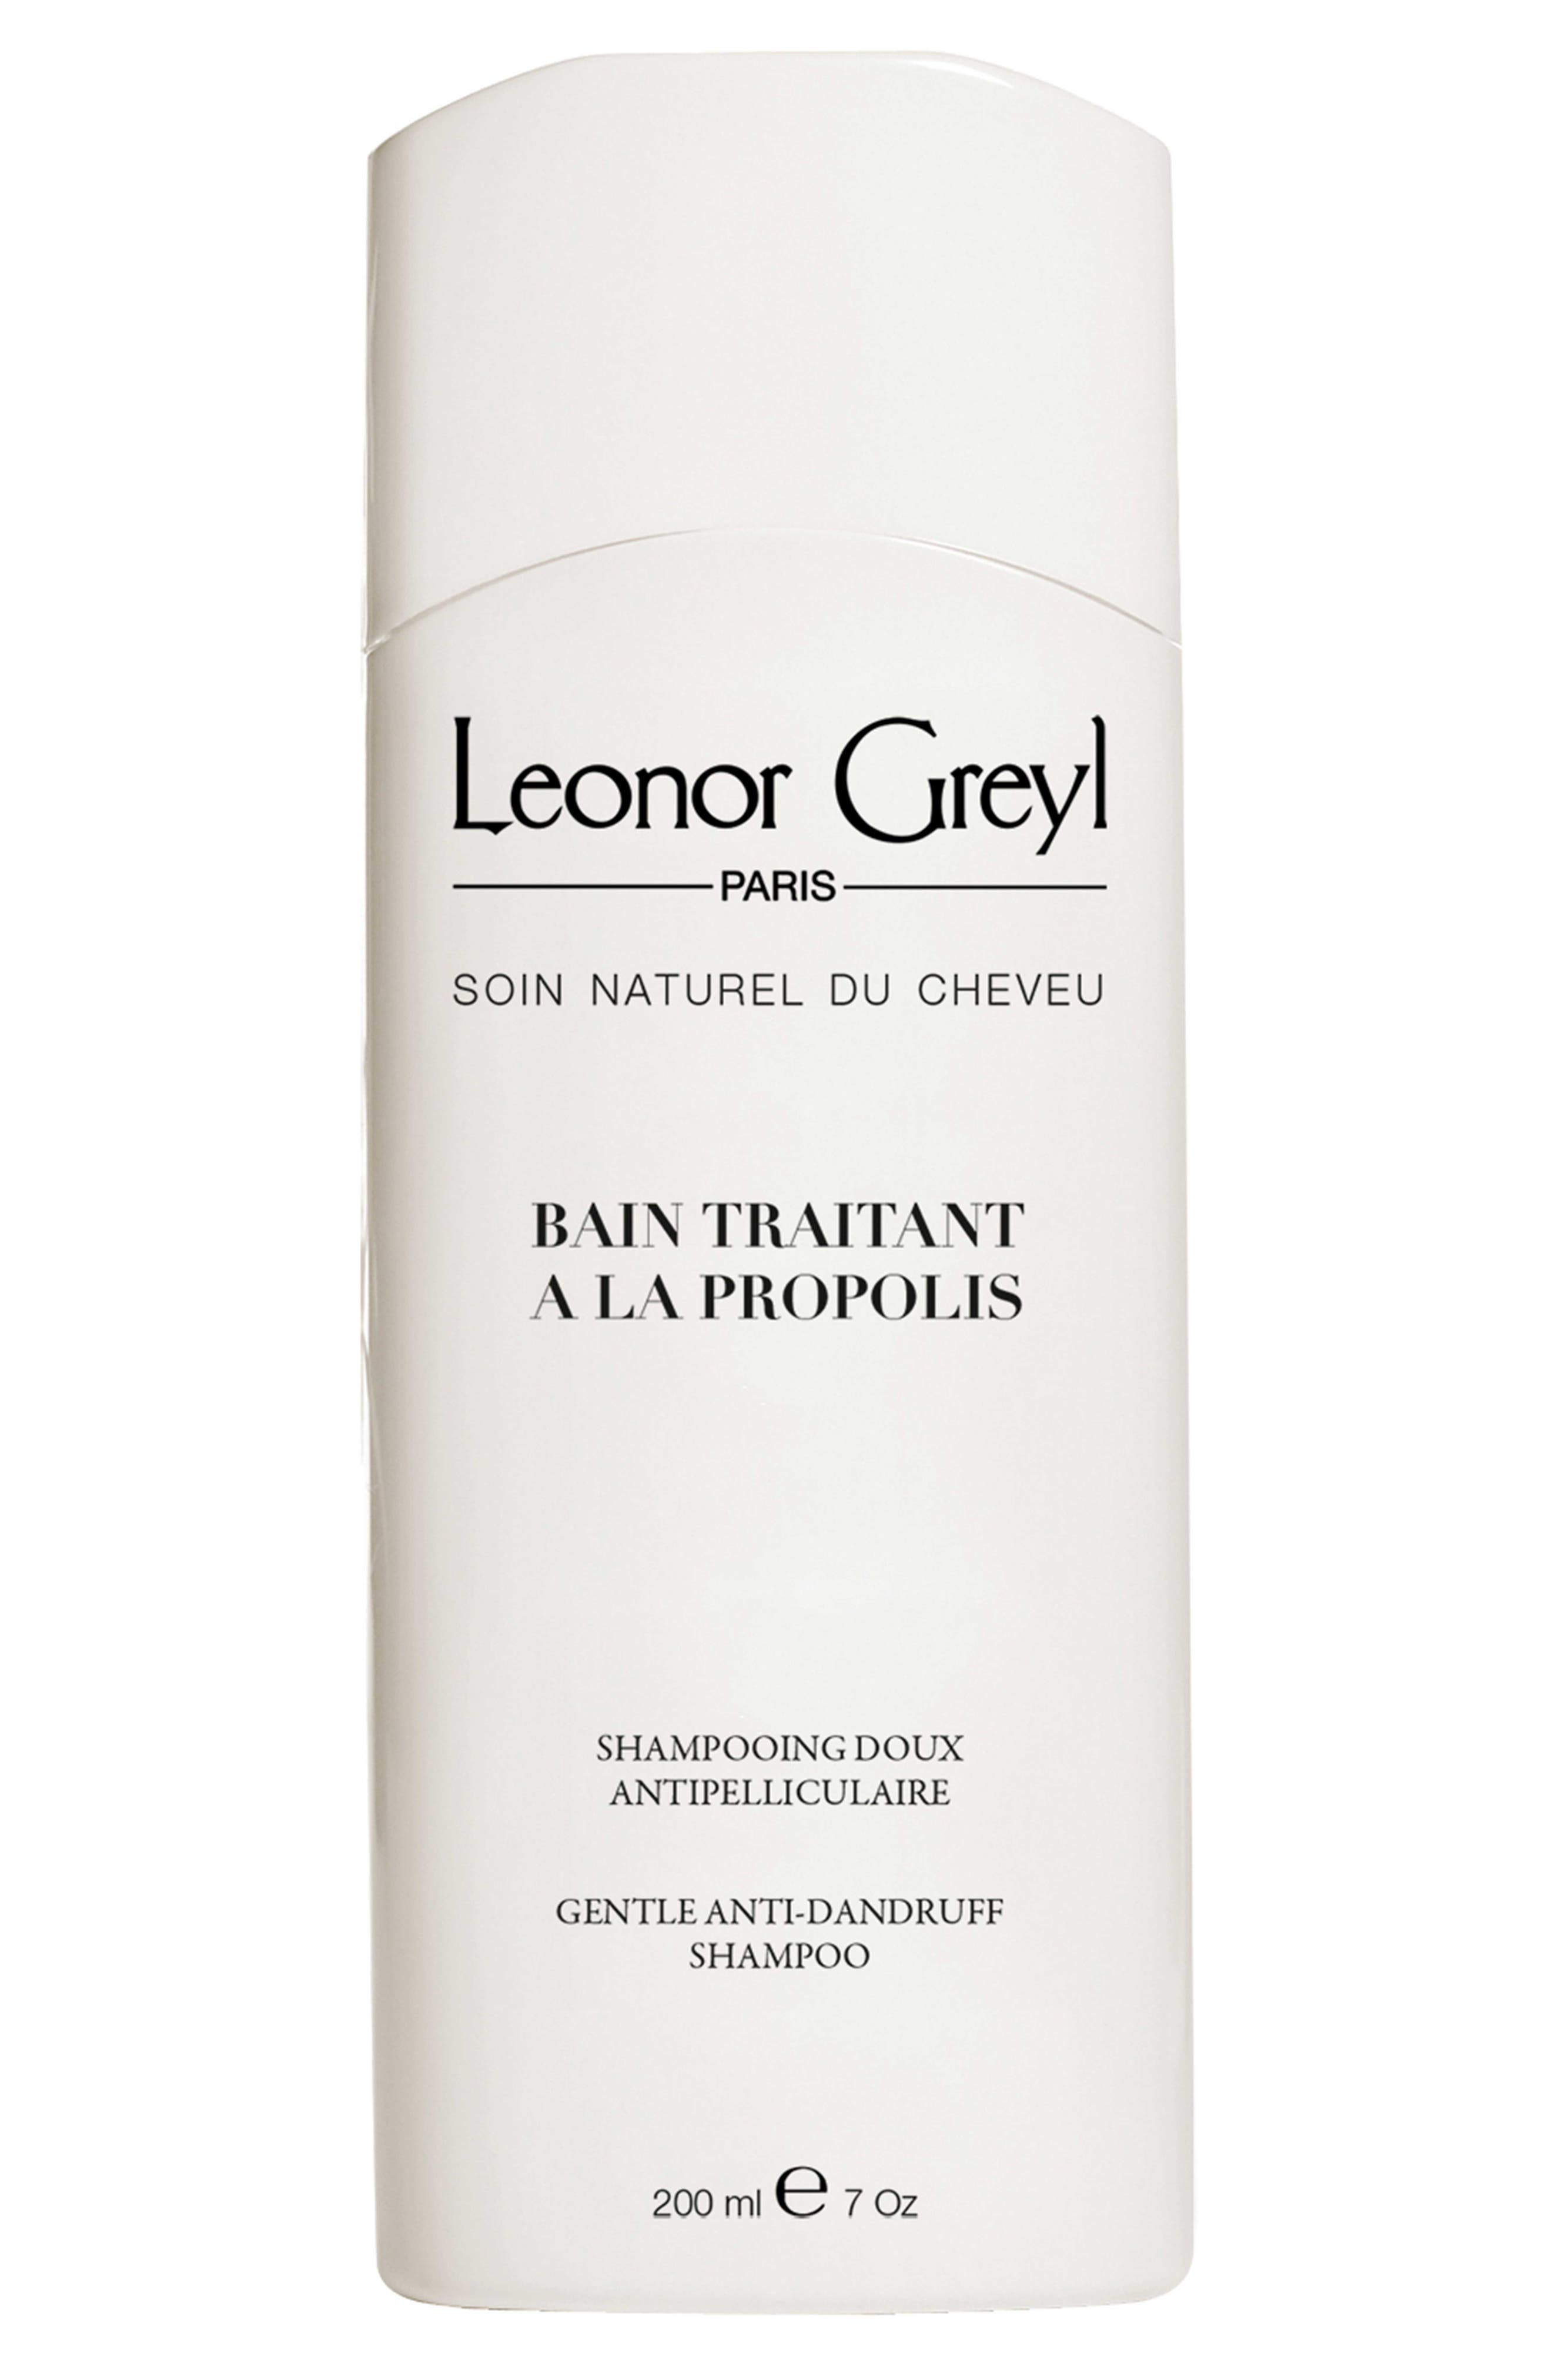 Leonor Greyl PARIS 'Gentle Anti-Dandruff Shampoo'